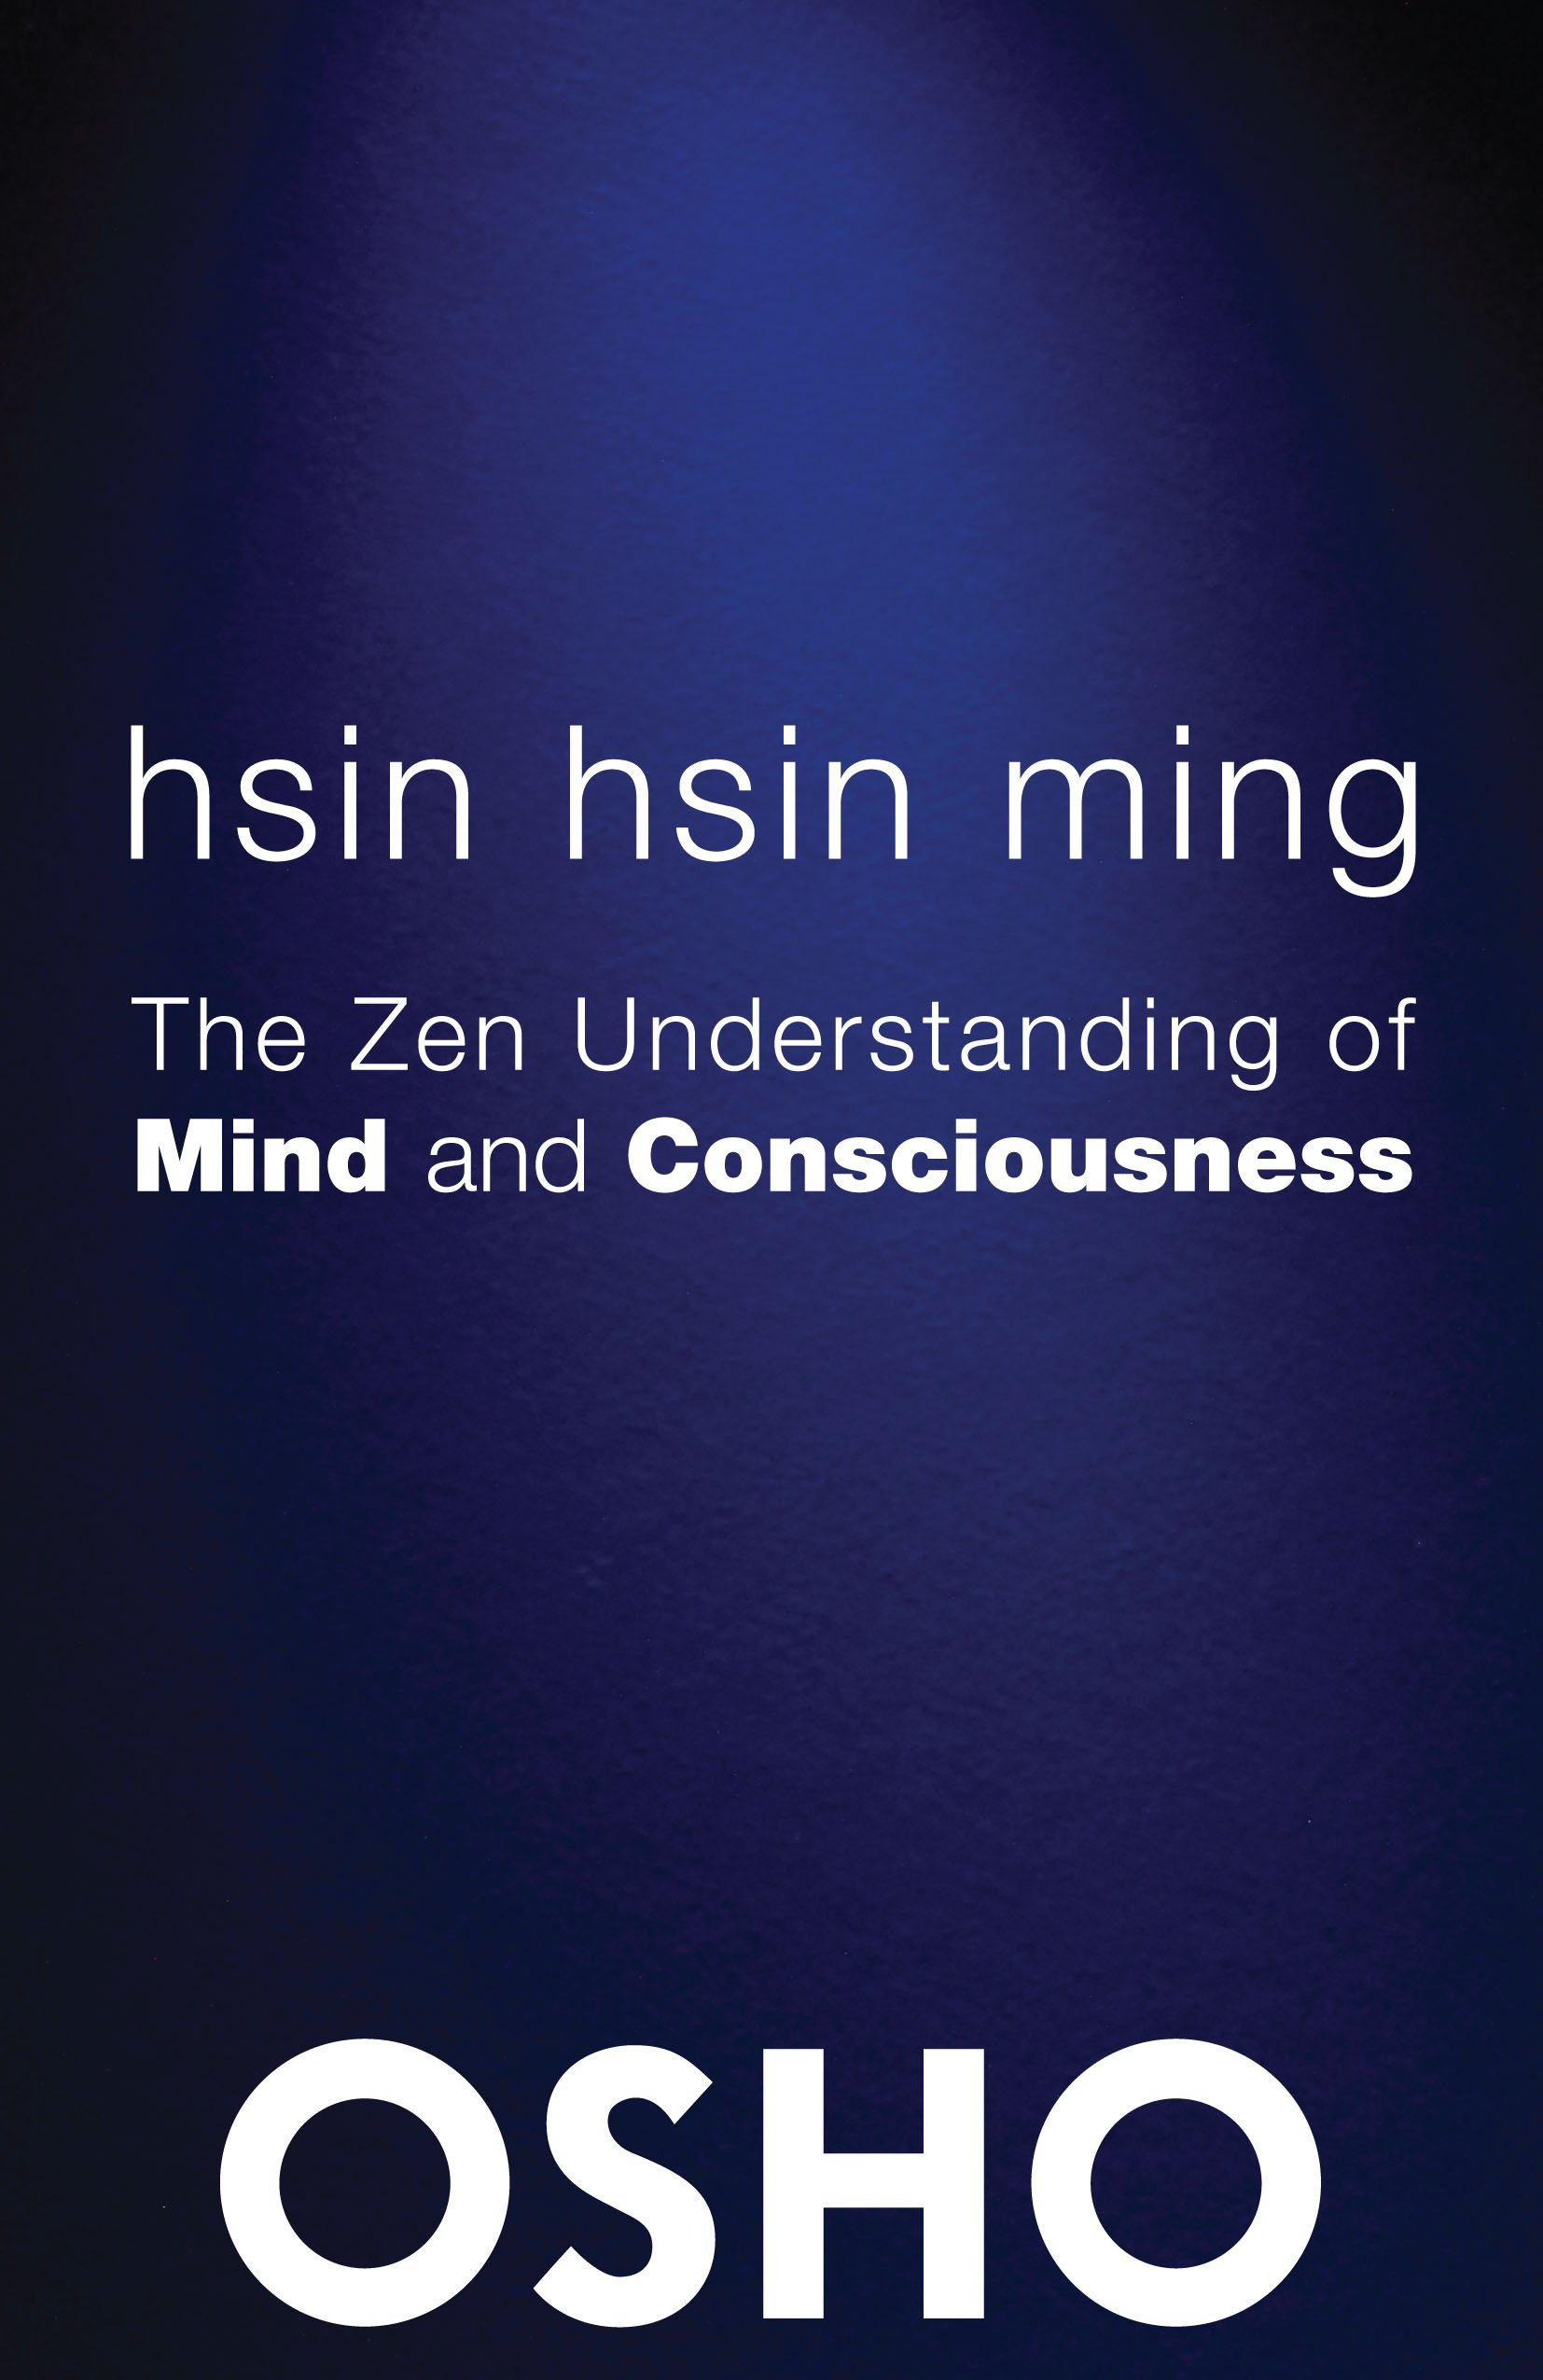 Download Hsin Hsin Ming: The Zen Understanding of Mind and Consciousness (OSHO Classics) pdf